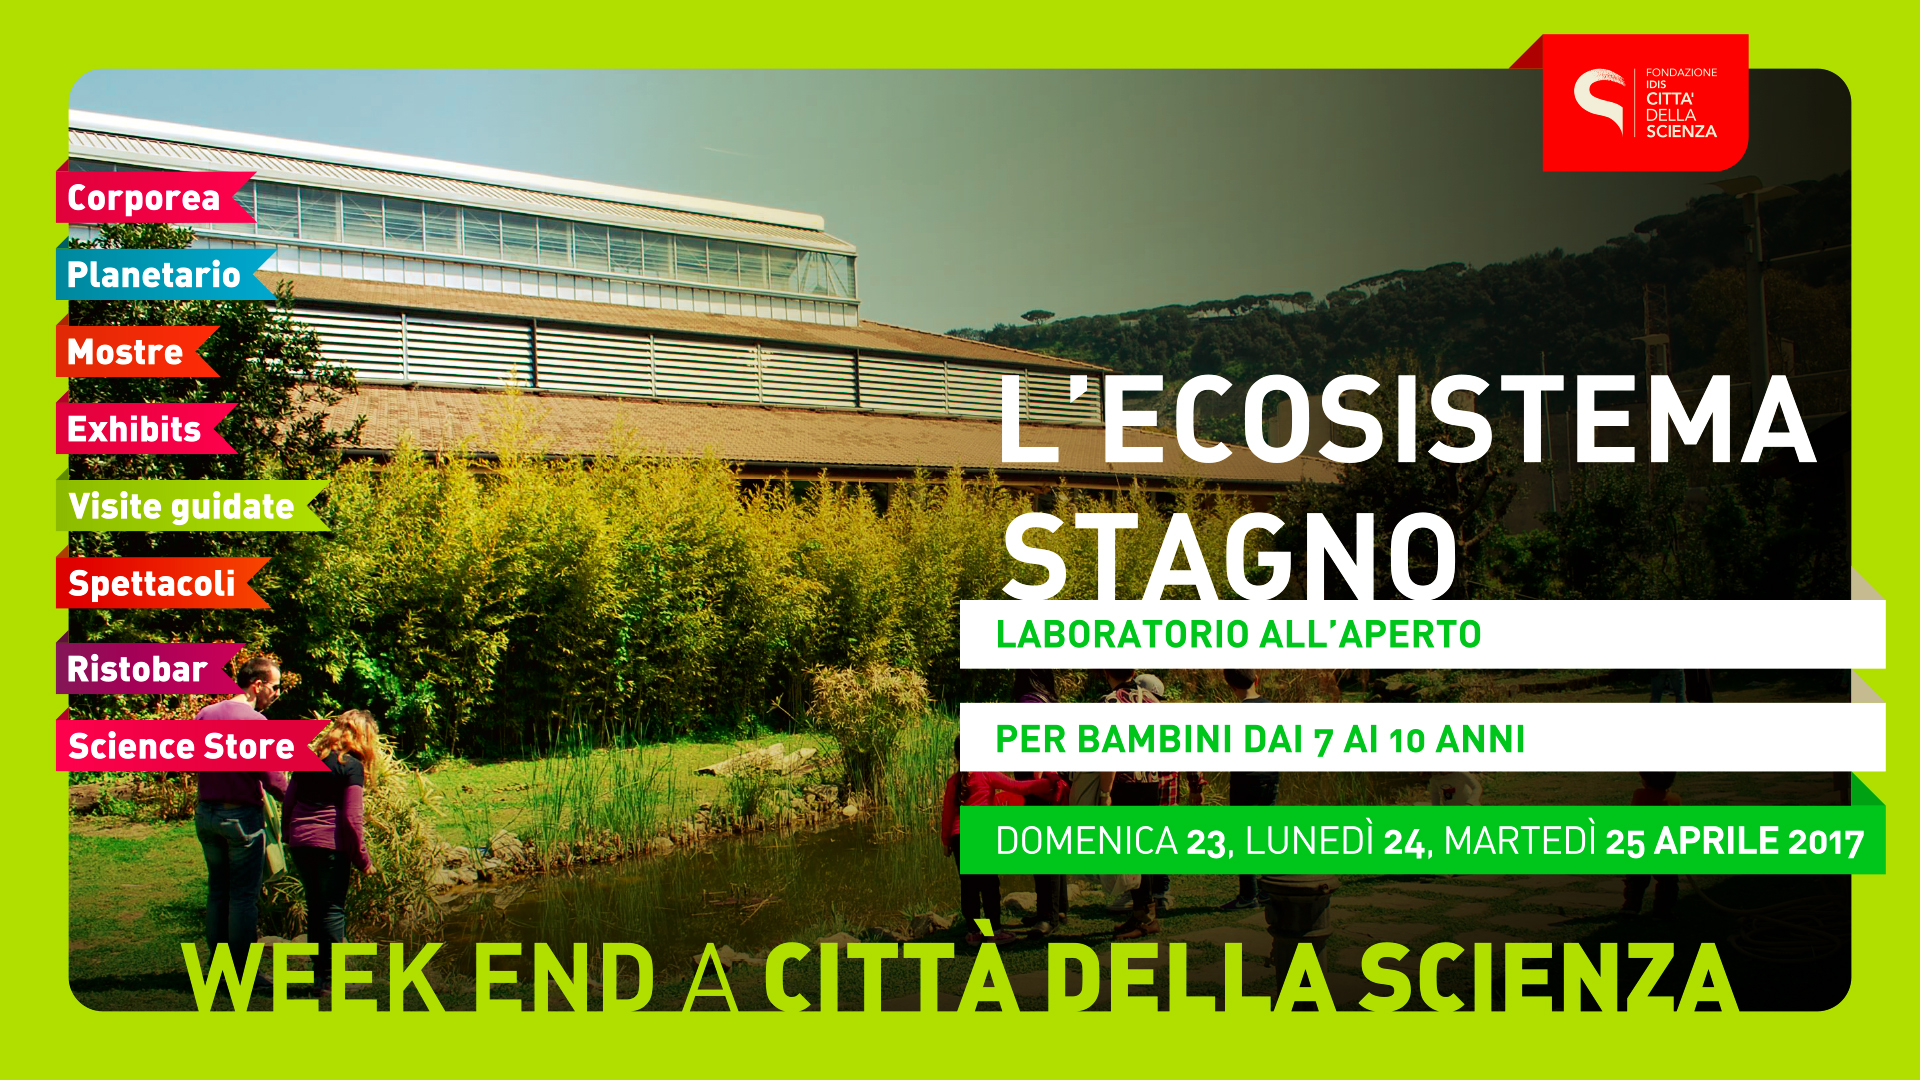 Adv week end aprile 2017 for Ecosistema stagno